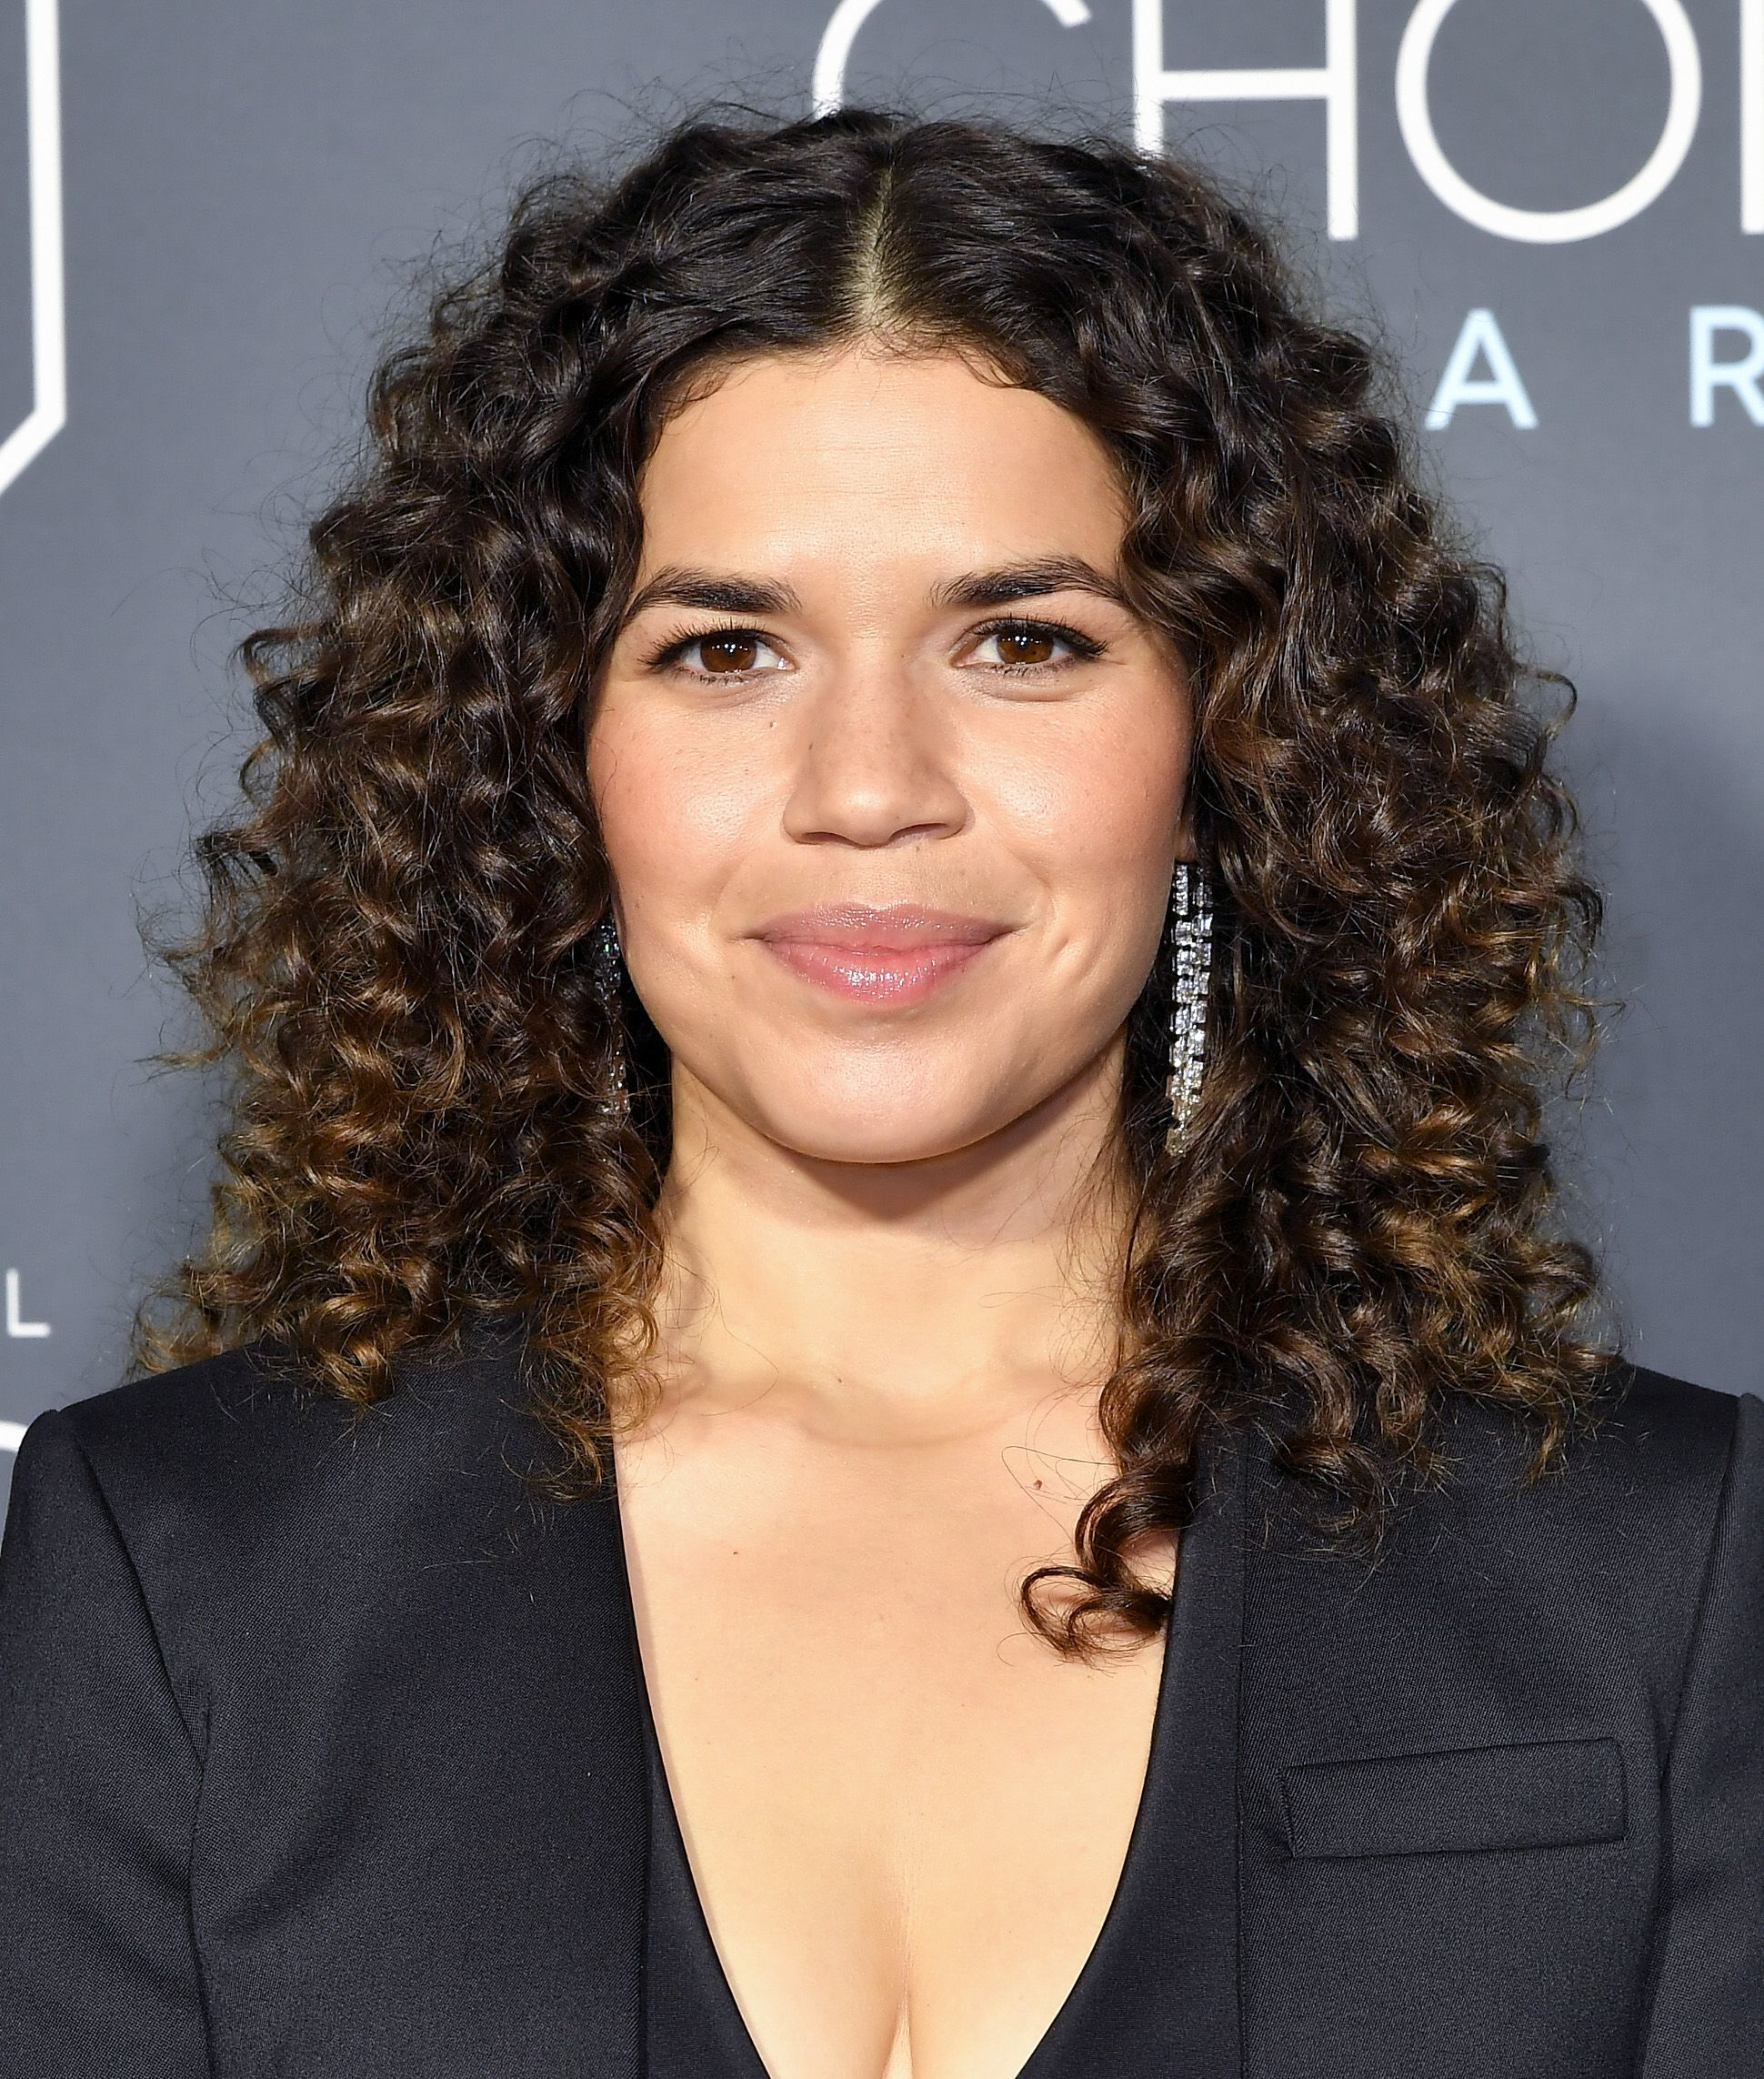 America Ferrera with shoulder length curly brown hair